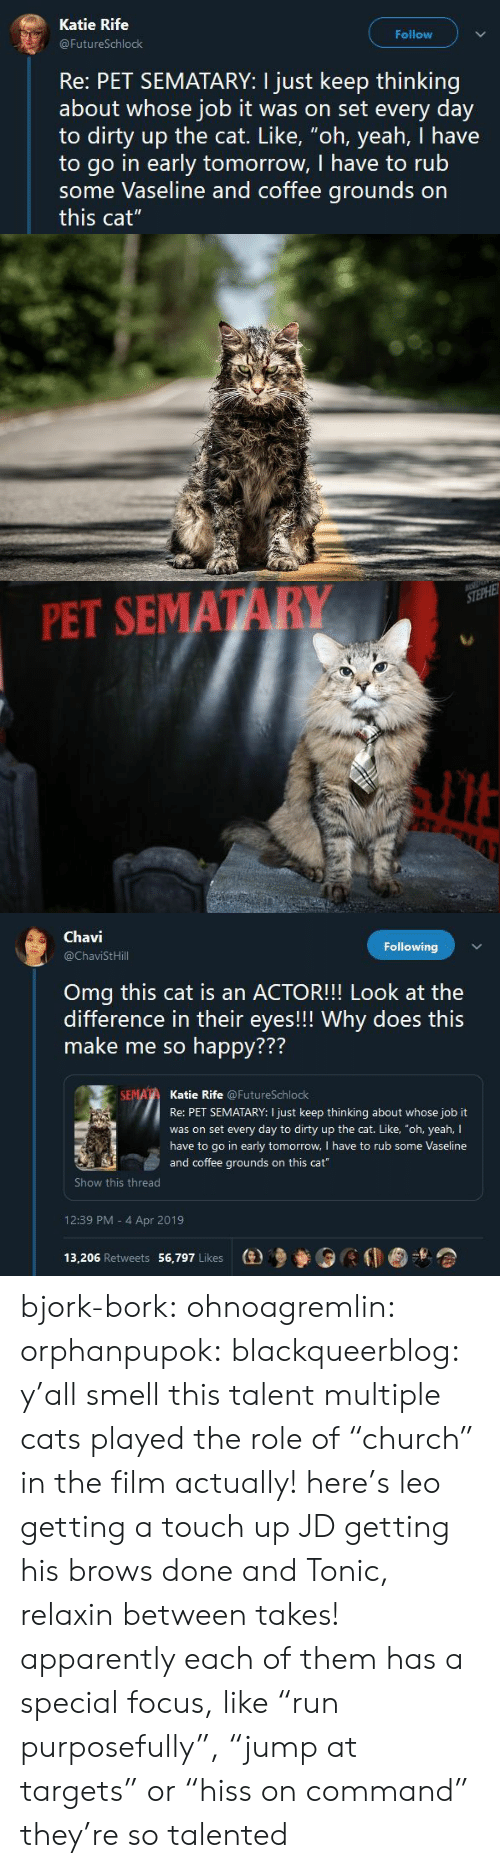 """Brows: Katie Rife  Follow  FutureSchlock  Re: PET SEMATARY: I just keep thinking  about whose job it was on set every day  to dirty up the cat. Like, """"oh, yeah, I have  to go in early tomorrow, I have to rub  some Vaseline and coffee grounds on  this cat""""   PET SEMATARY   Chavi  @ChaviStHill  Following  Omg this cat is an ACTOR!!! Look at the  difference in their eyes!!! Why does this  make me so happy???  772  Katie Rife @FutureSchlock  Re: PET SEMATARY: I just keep thinking about whose job it  was on set every day to dirty up the cat. Like, """"oh, yeah, I  have to go in early tomorrow, I have to rub some Vaseline  and coffee grounds on this cat  Show this thread  12:39 PM - 4 Apr 2019  13,206 Retweets 56,797 Likes  (e)乡參0 bjork-bork:  ohnoagremlin:  orphanpupok:  blackqueerblog: y'all smell this talent  multiple cats played the role of """"church"""" in the film actually! here's leo getting a touch up JD getting his brows done and Tonic, relaxin between takes!   apparently each of them has a special focus, like """"run purposefully"""", """"jump at targets"""" or """"hiss on command"""" they're so talented"""